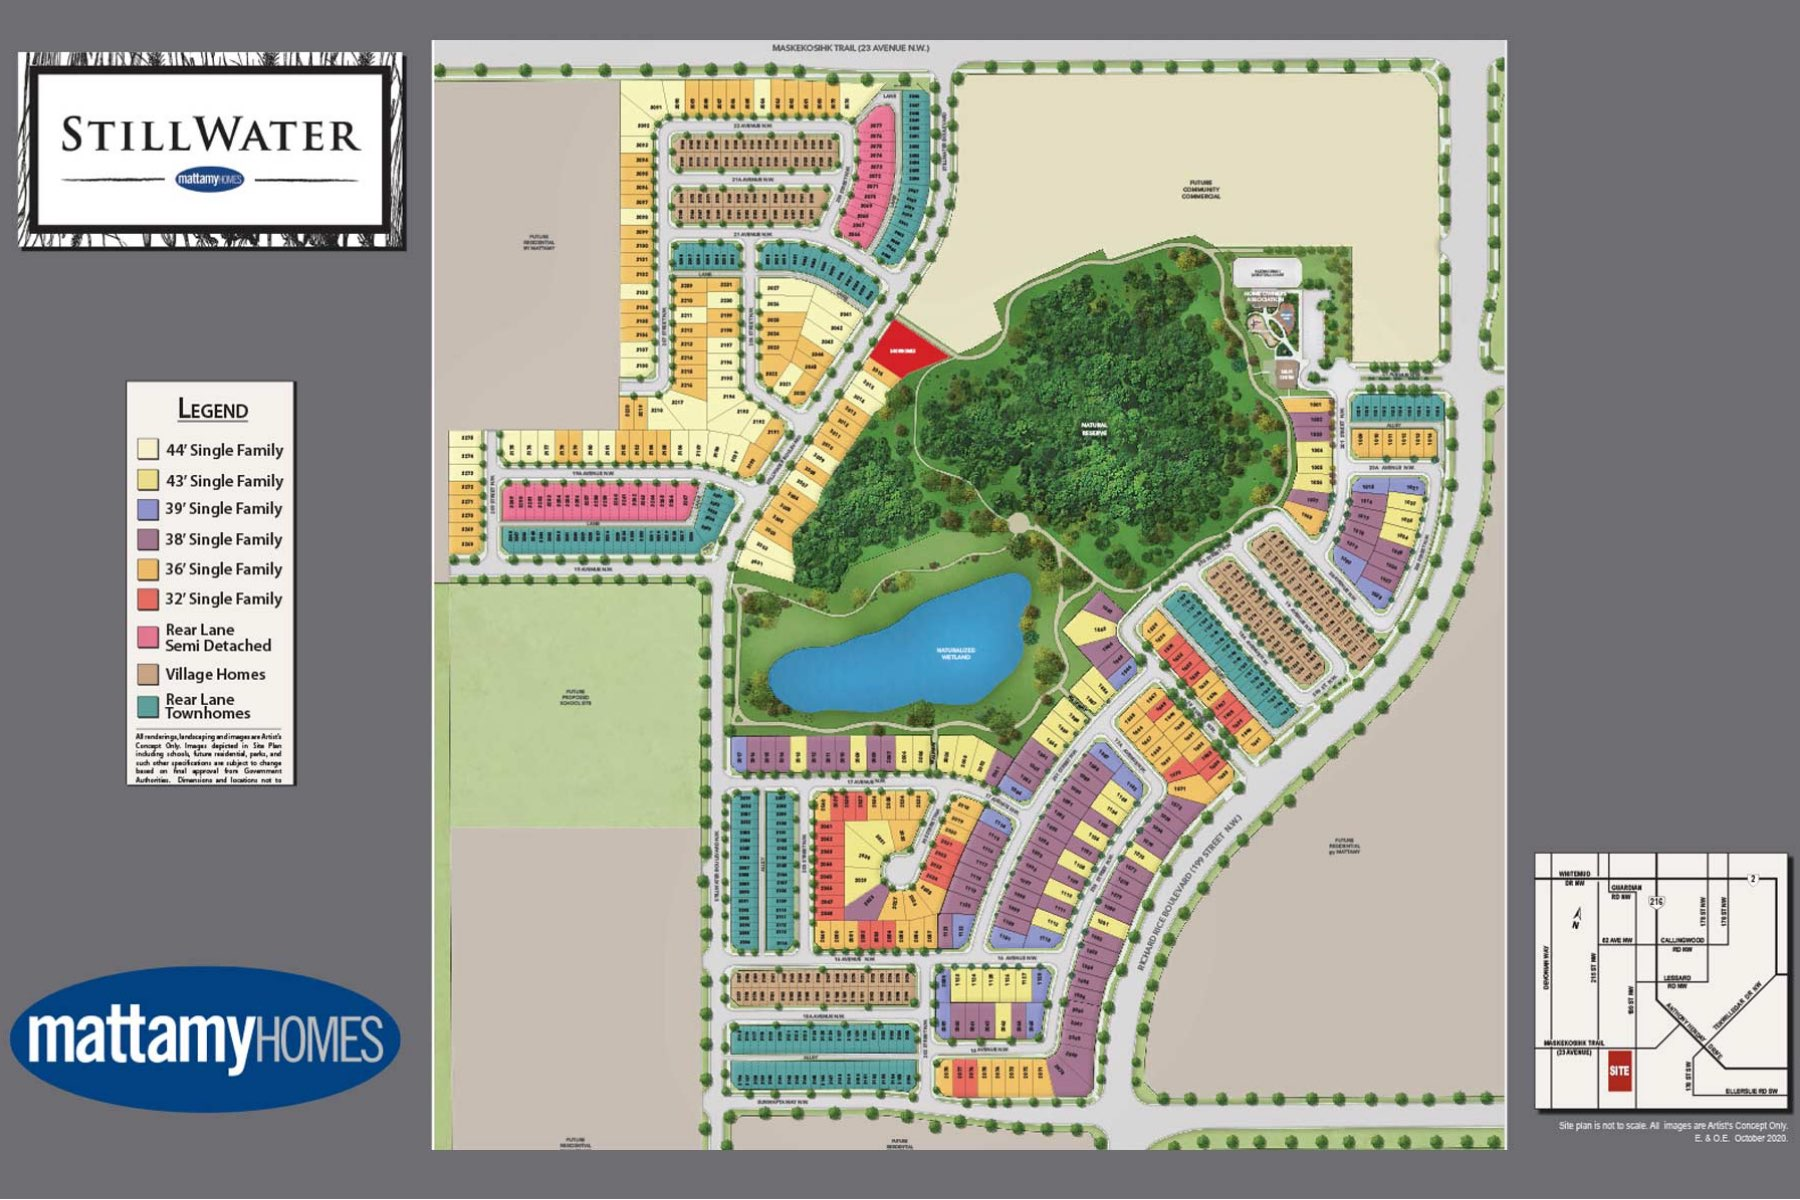 Stillwater Lot Map in Edmonton Alberta by Mattamy Homes